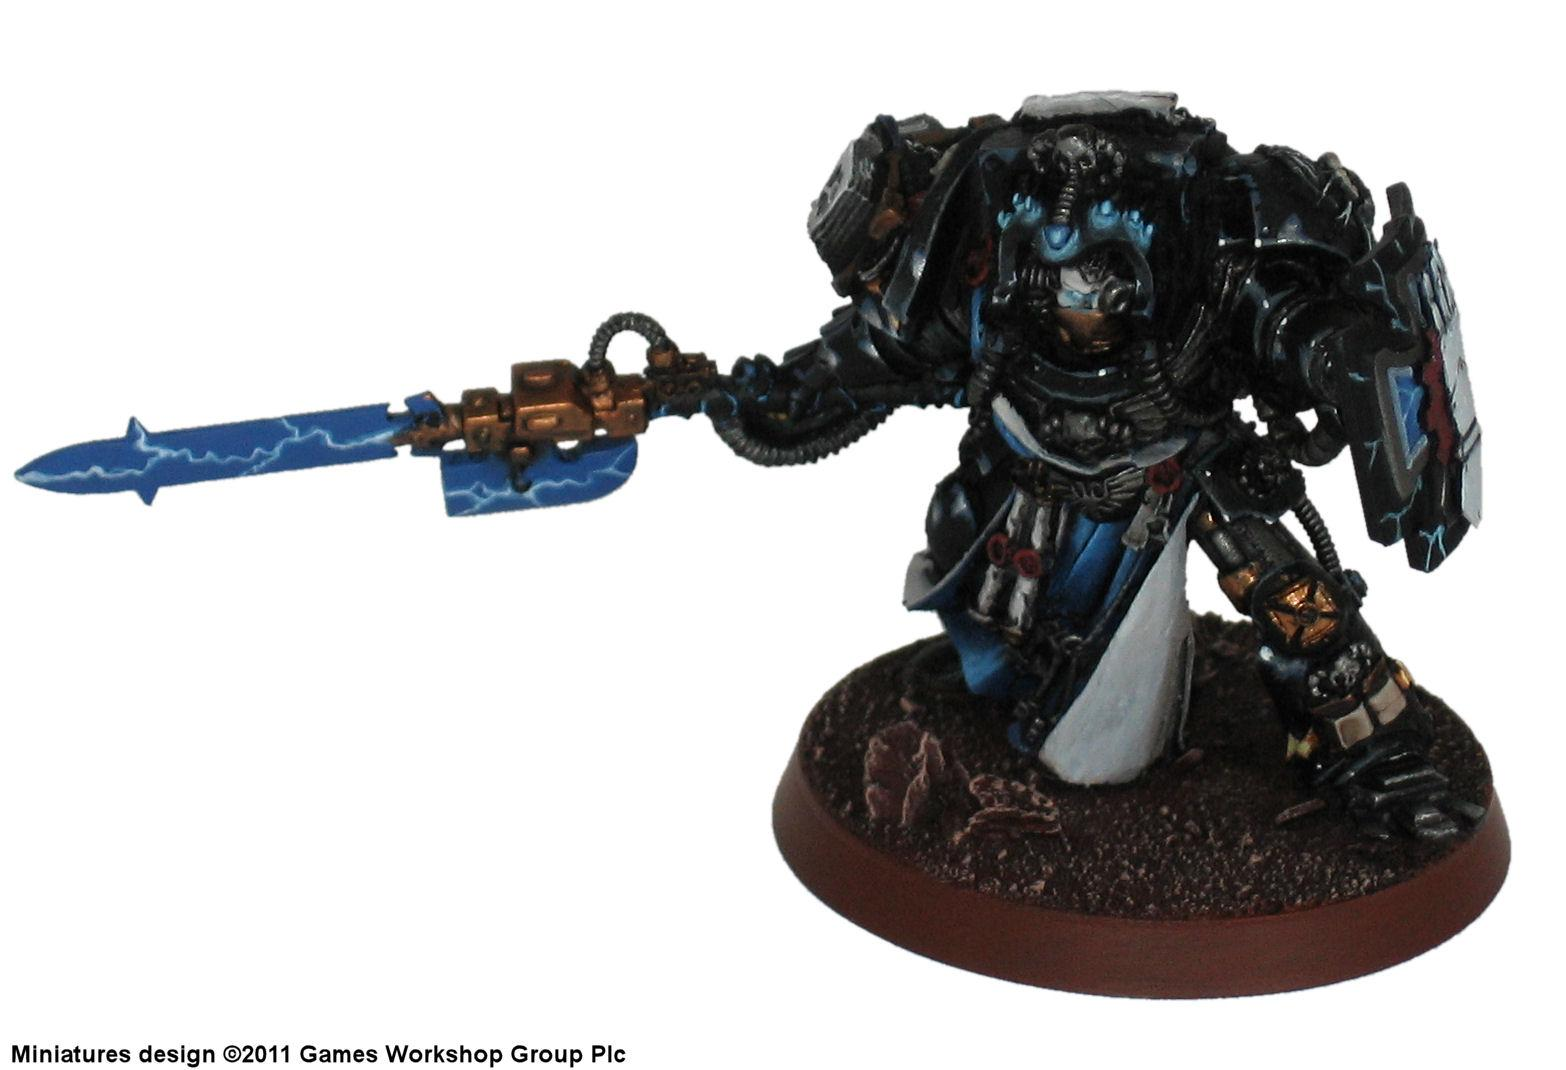 Conversion, Hands, Iron, Librarian, Madeus, Science-fiction, Space, Space Marines, Warhammer 40,000, Warhammer Fantasy